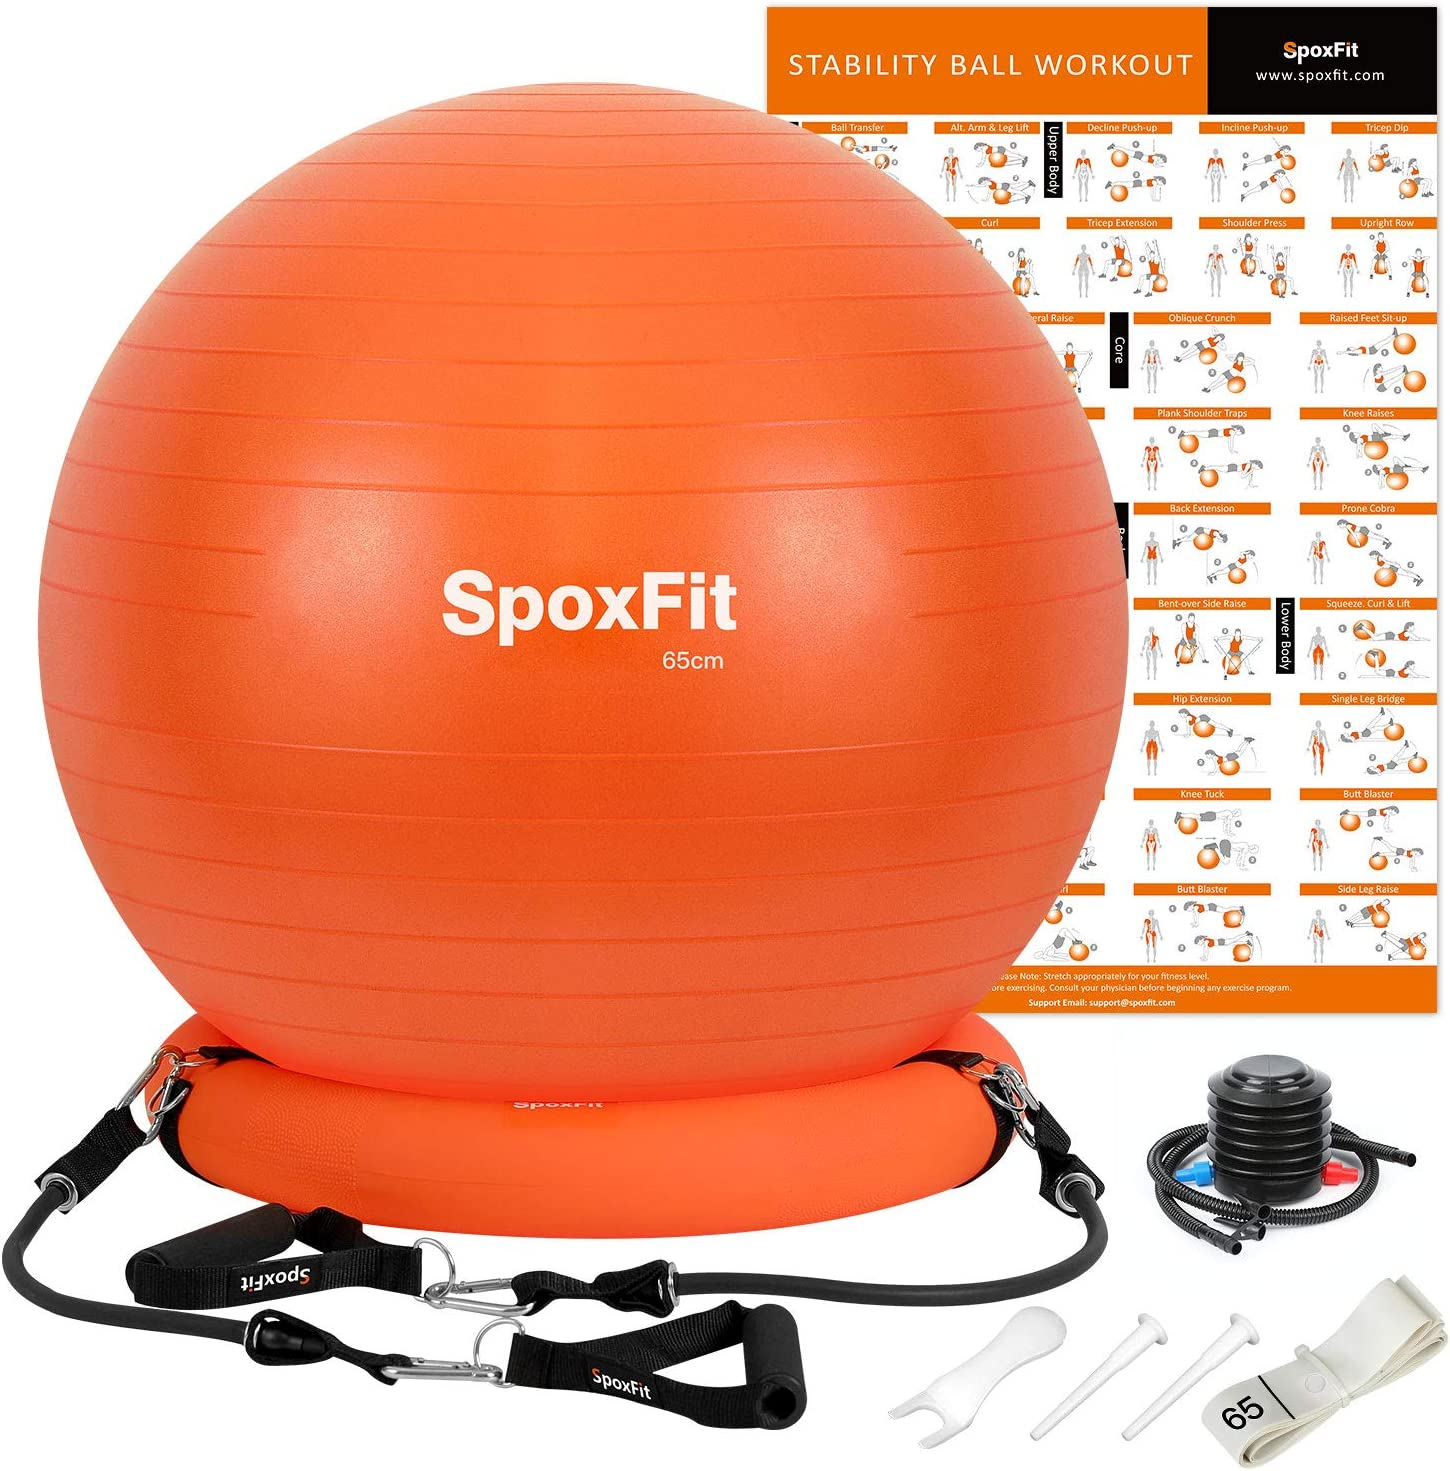 SpoxFit Exercise Ball Chair with Resistance Bands, Perfect for Office, Yoga, Balance, Fitness, Super Strong Holds 660lbs. Set Includes Stable Base, Workout Poster, Pump, Home Gym Bundle-65cm